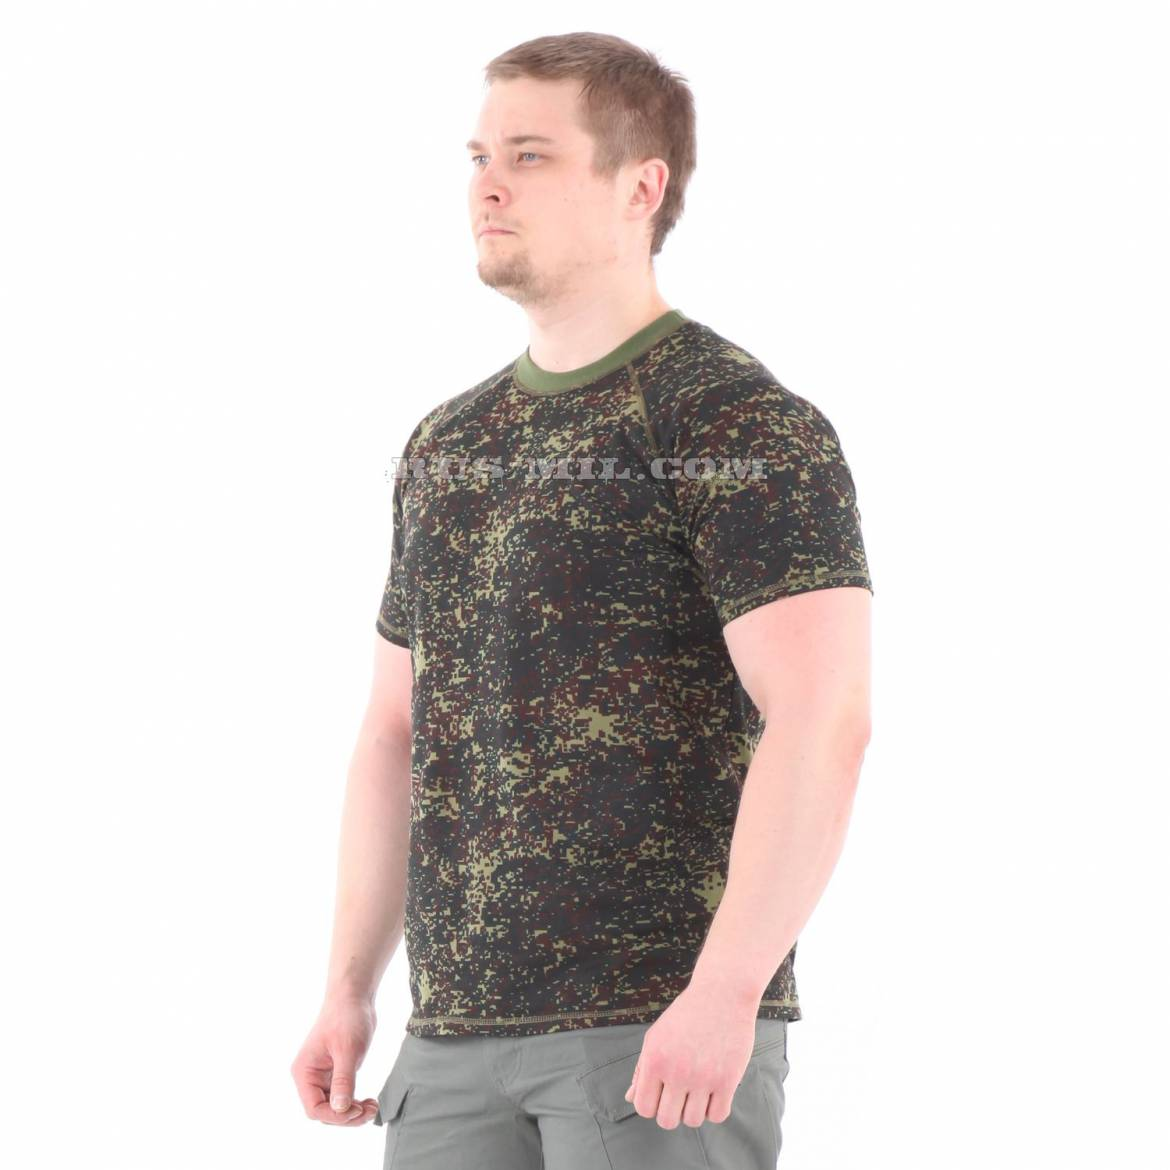 Russian-Cotton-T-Shirt-in-Tsifra-for-sale.jpg